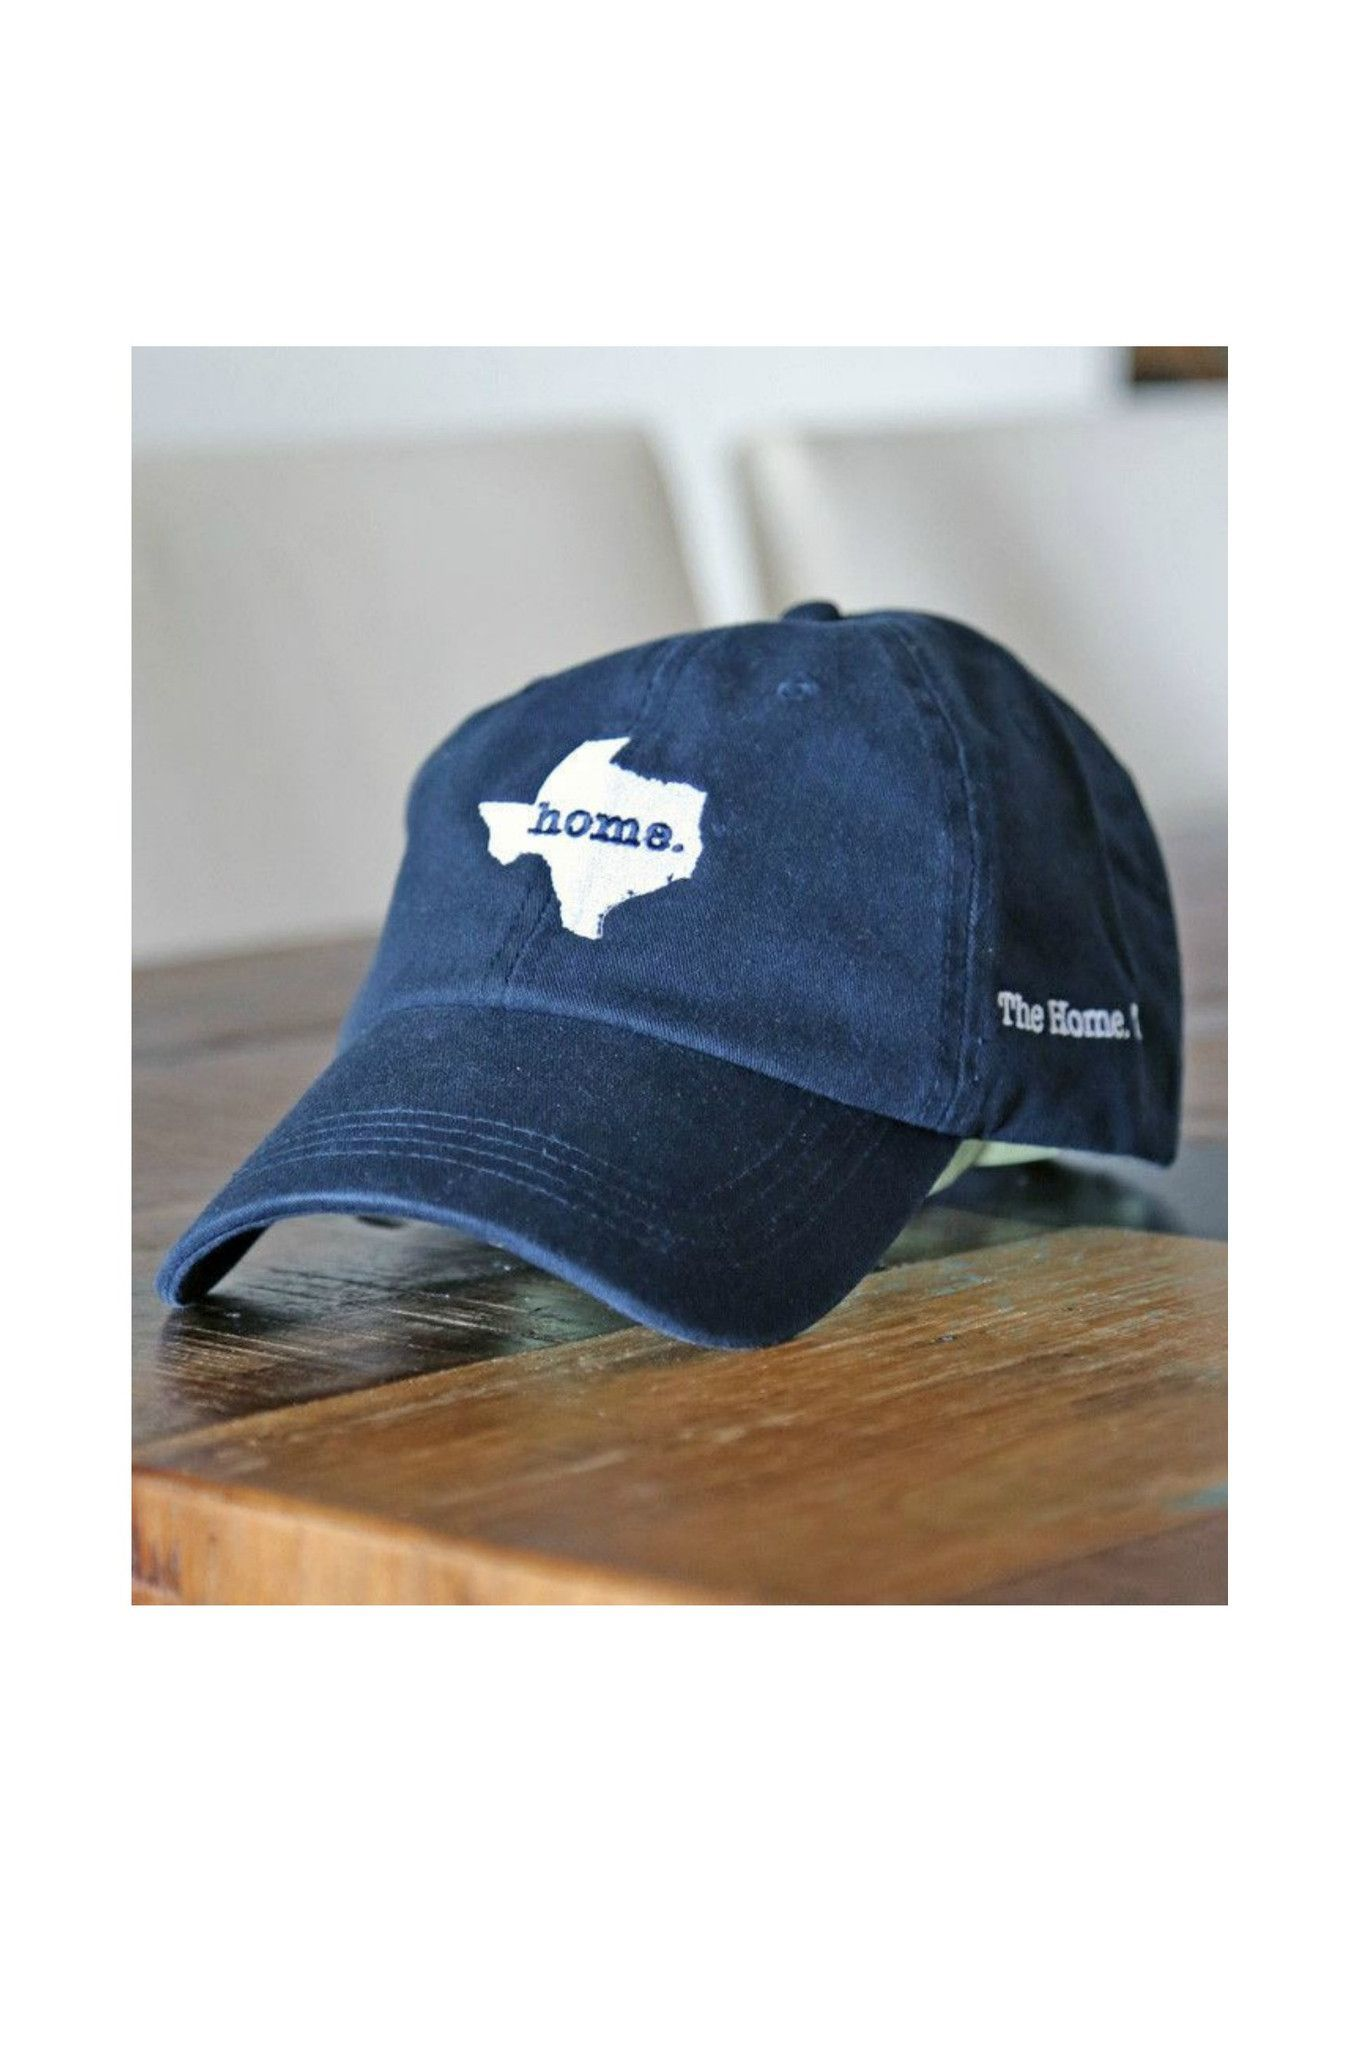 dc0742f56e1 The Home T Cap - Texas